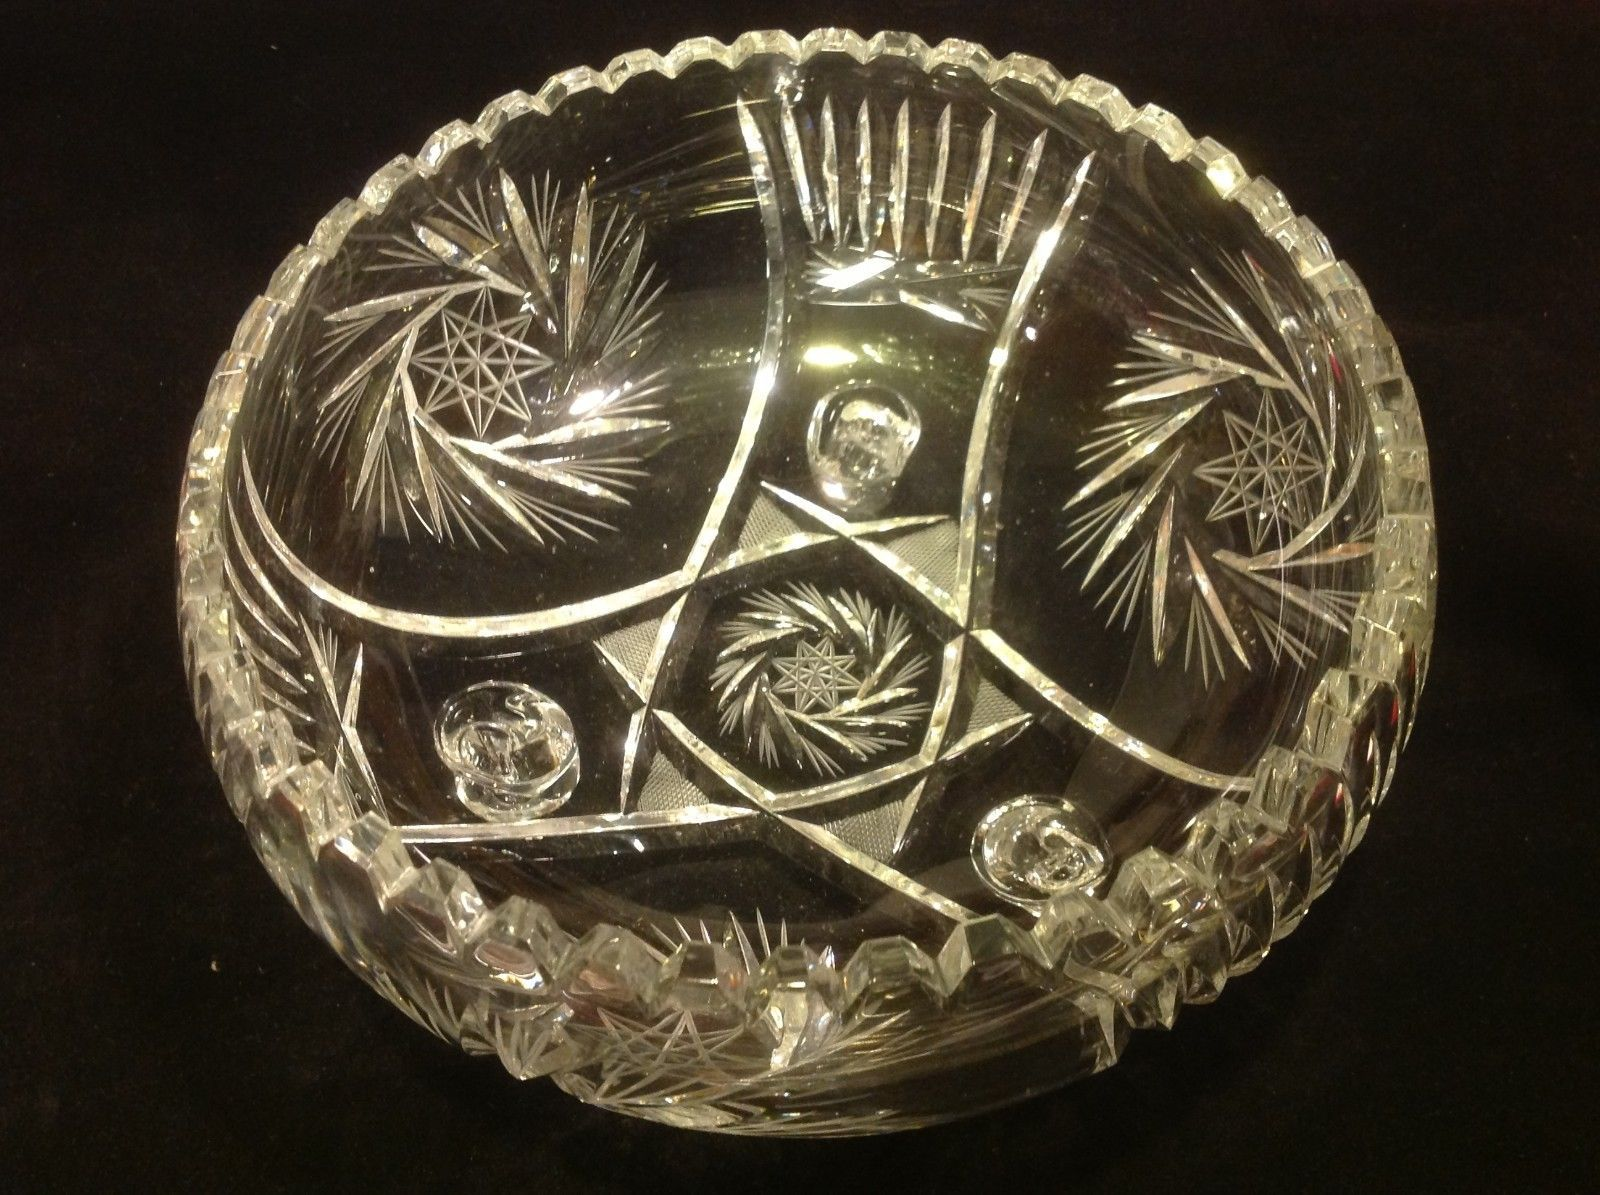 American Brilliant cut crystal glass medium three foot round bowl vintage estate